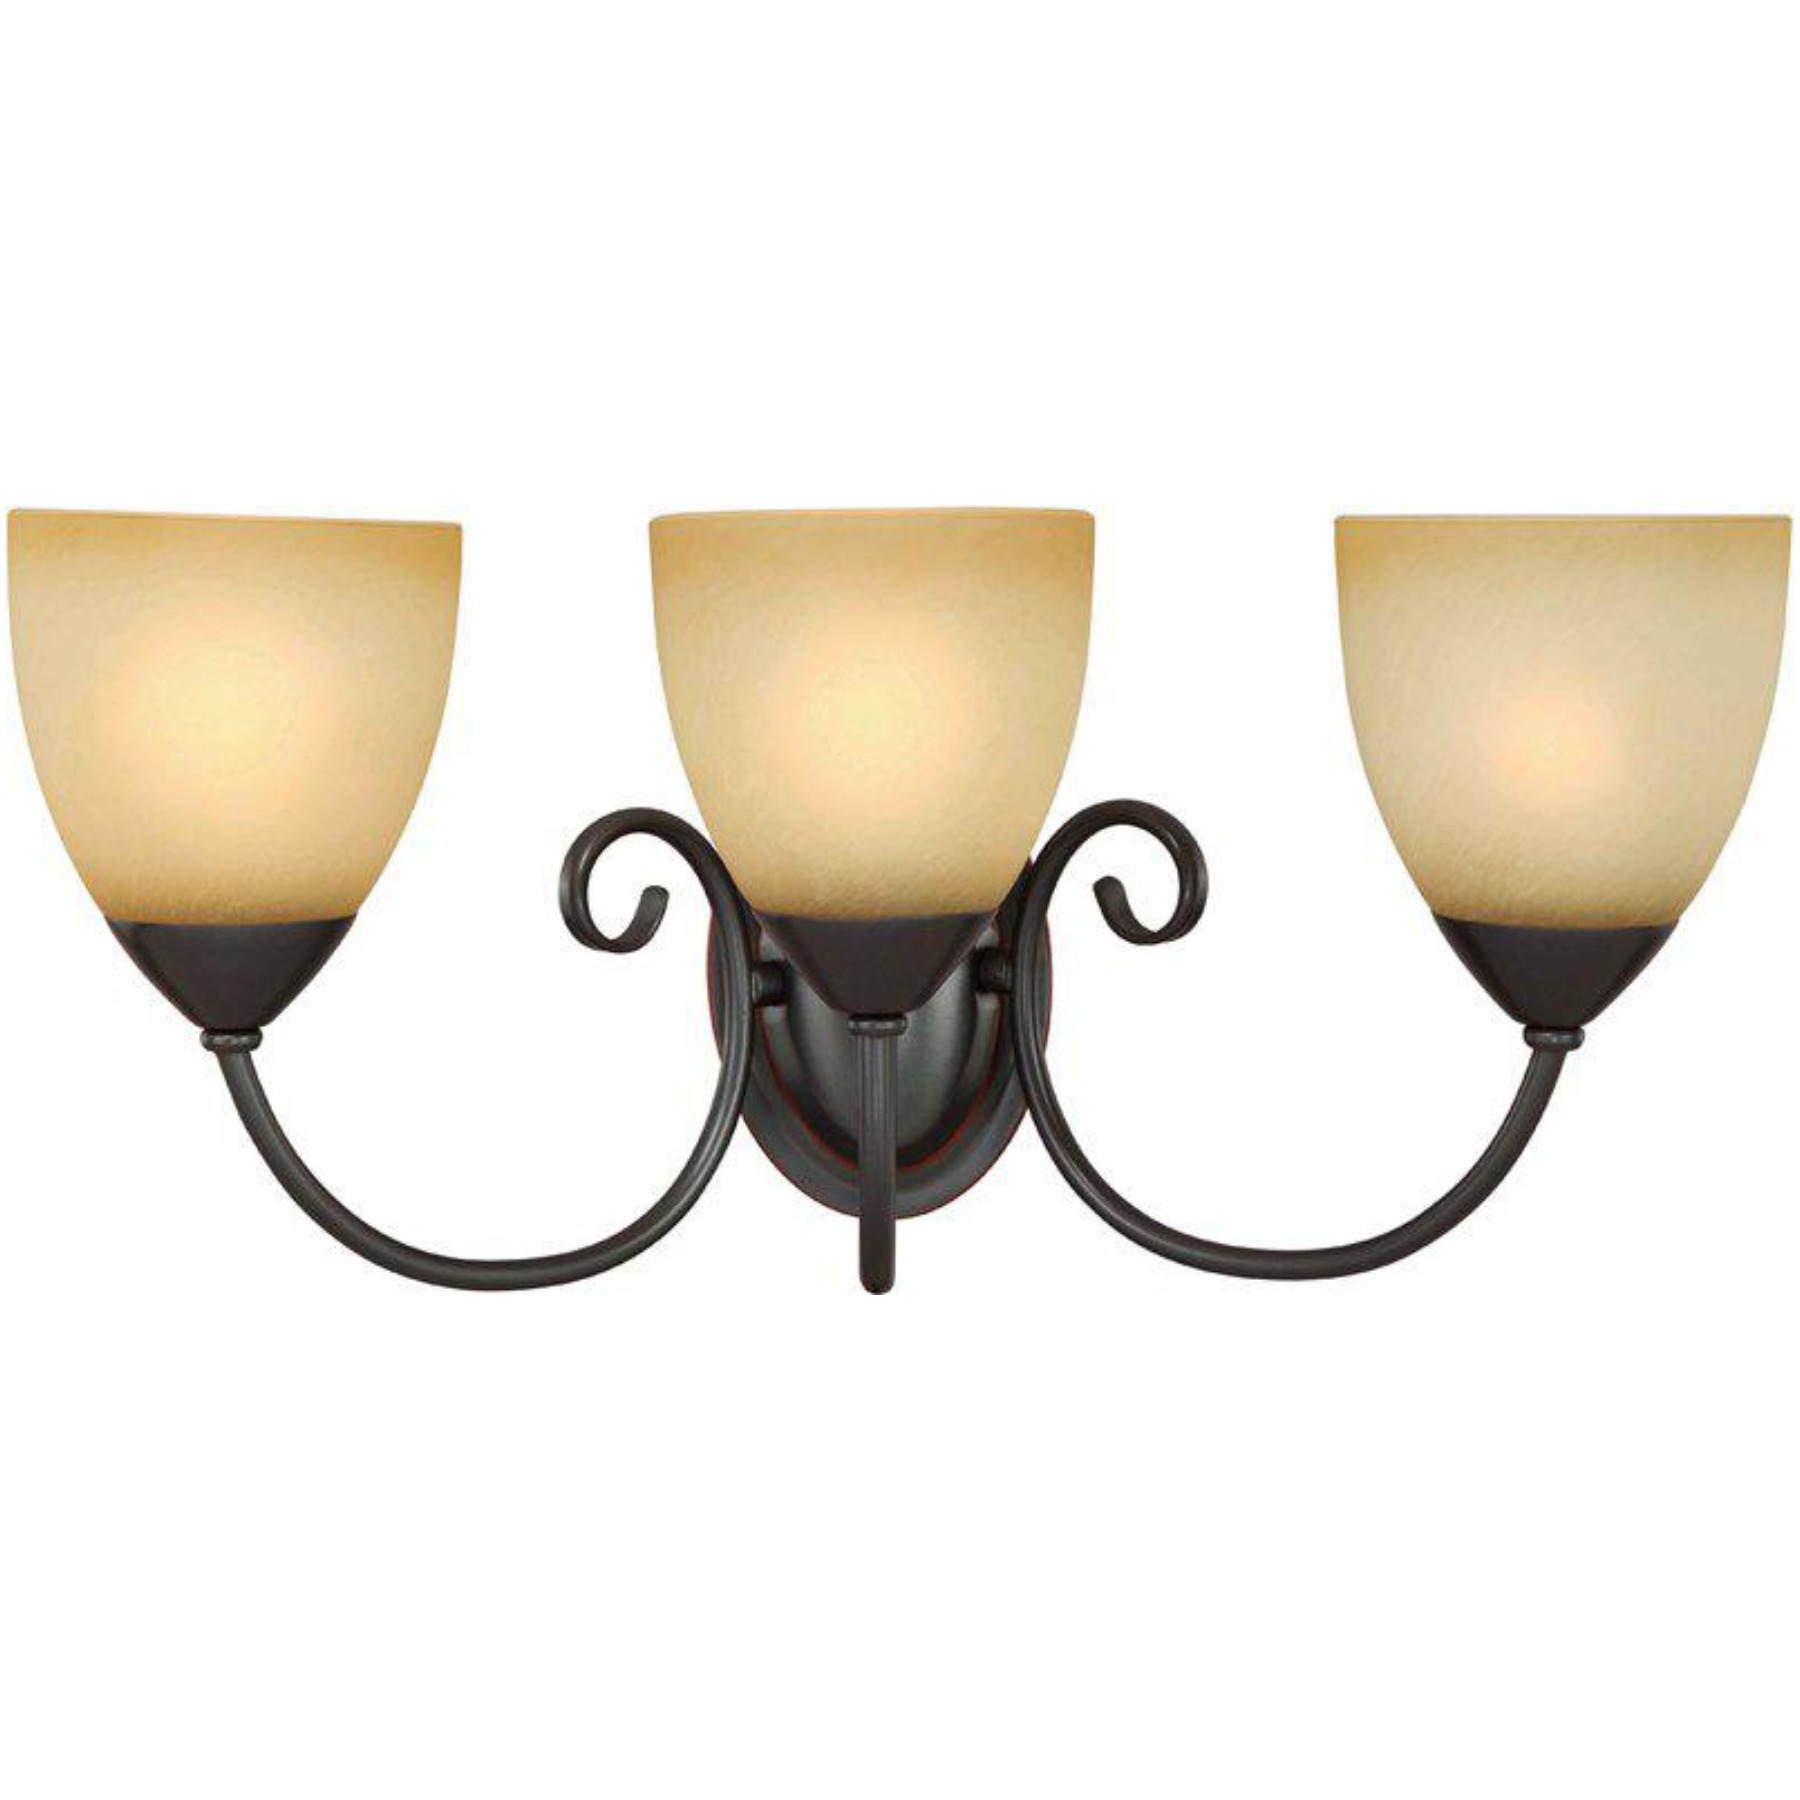 54-3850 Oil Rubbed Bronze 3 Light With Bath Light